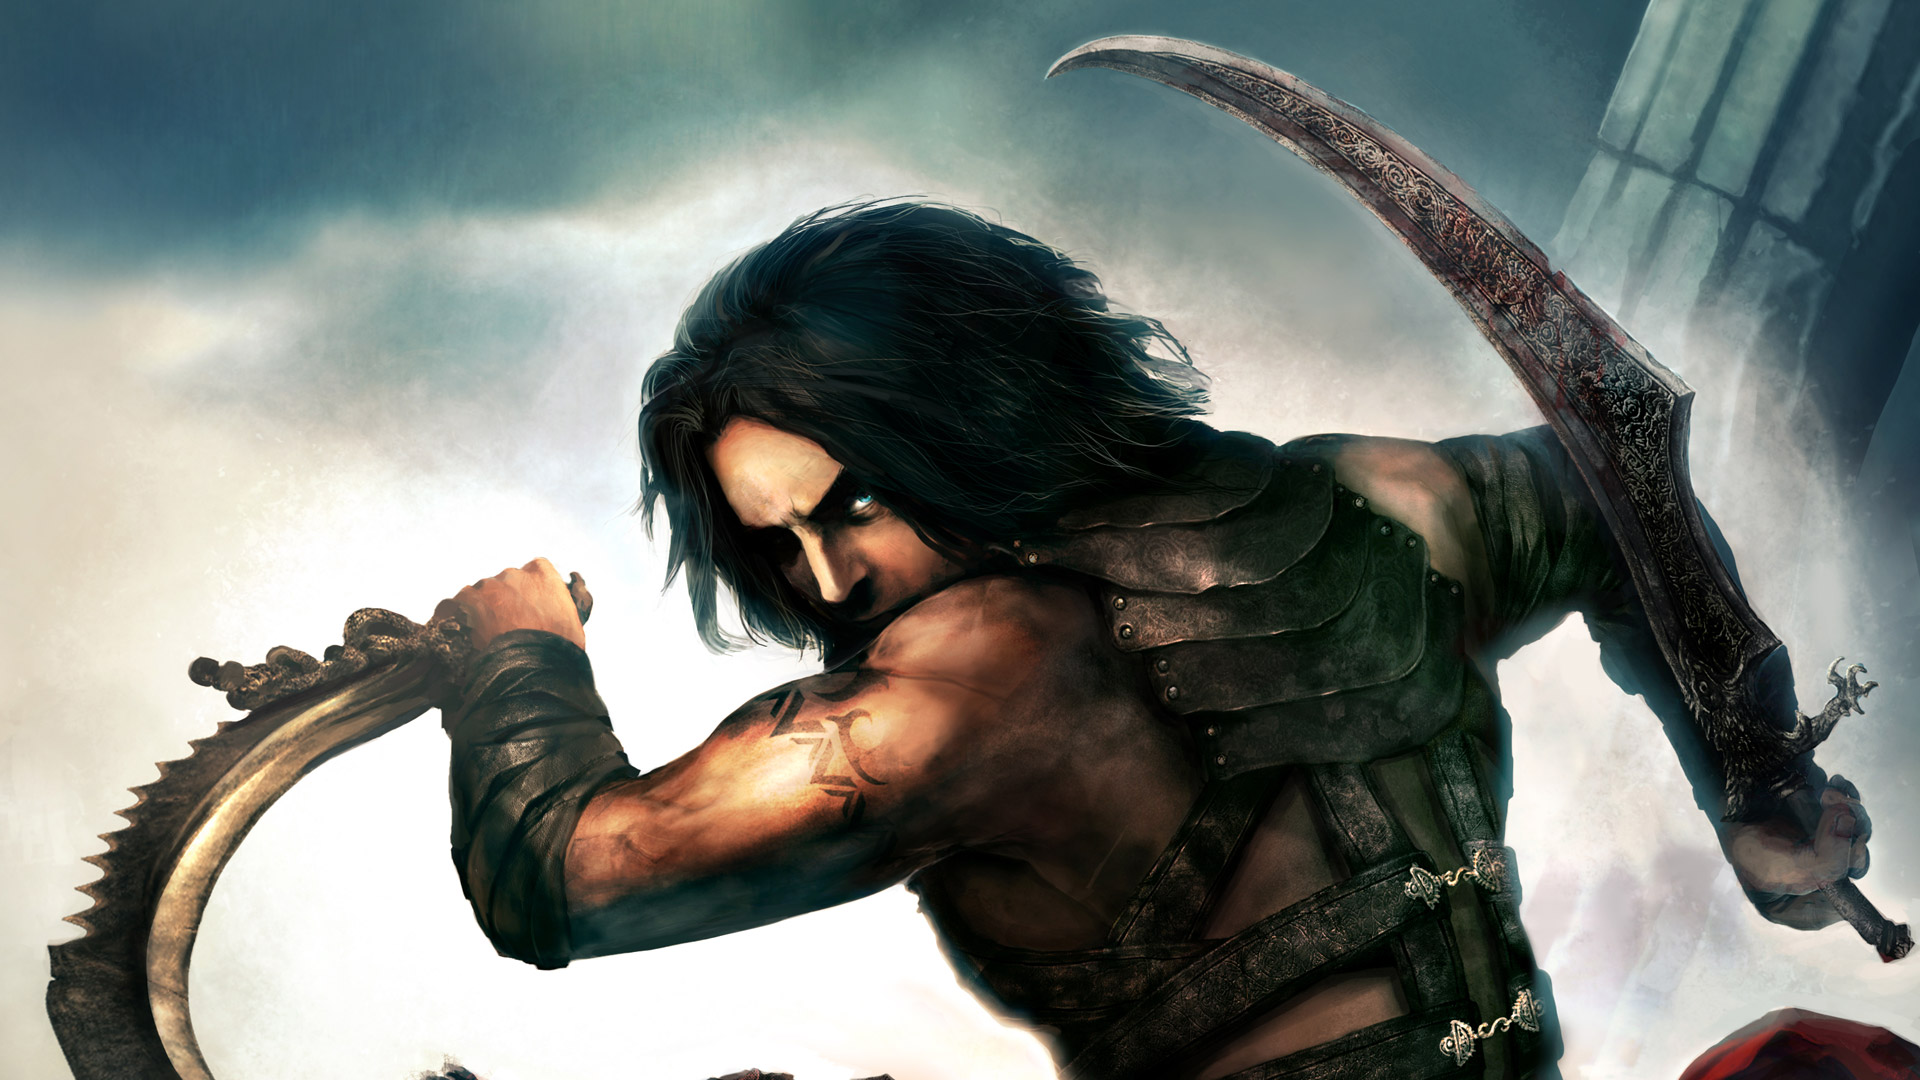 Prince of Persia: Warrior Within Wallpaper in 1920x1080